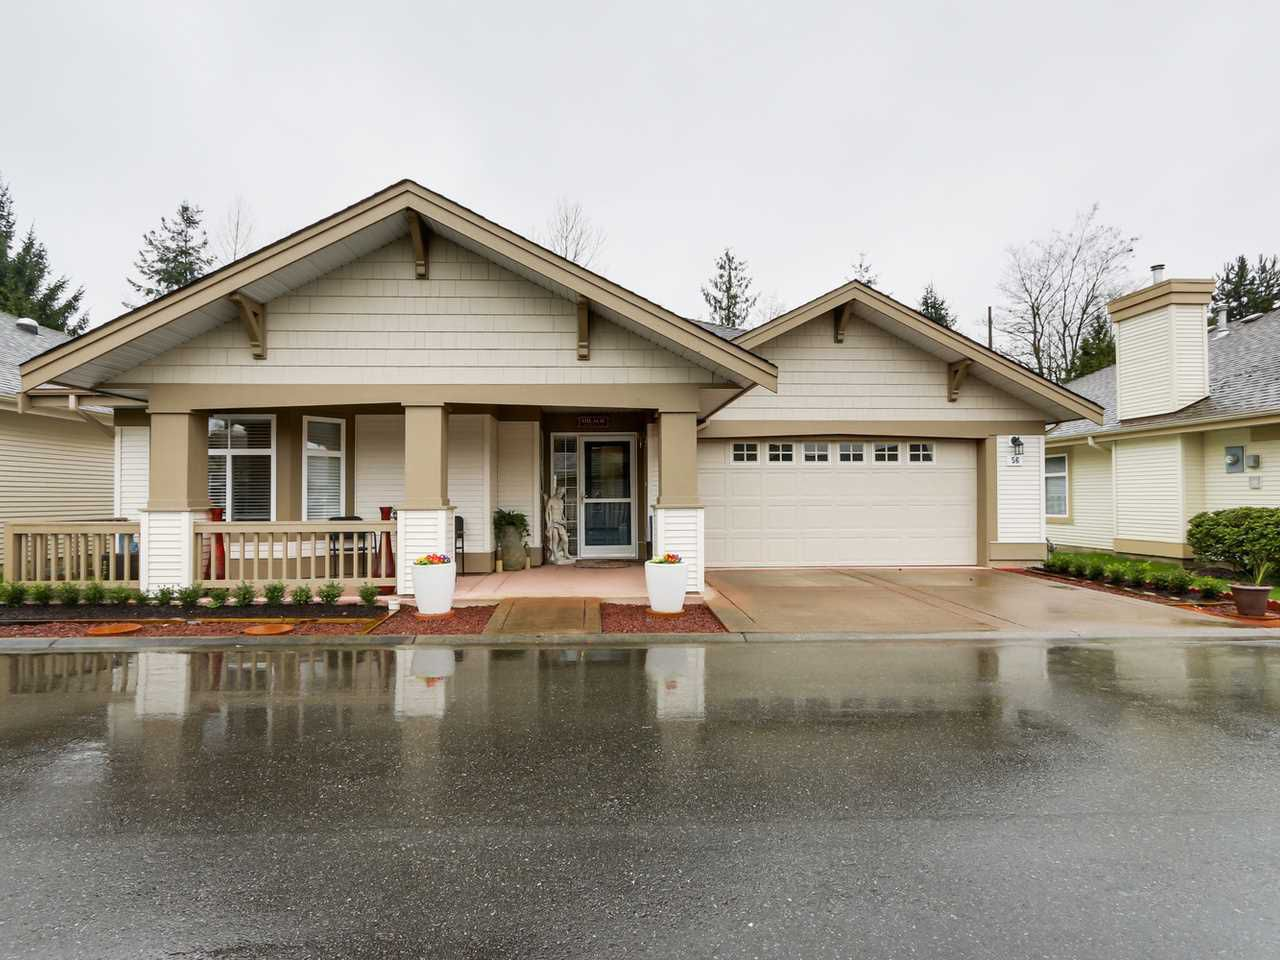 """Main Photo: 56 8555 209TH Street in Langley: Walnut Grove Townhouse for sale in """"AUTUMNWOOD"""" : MLS®# R2042335"""